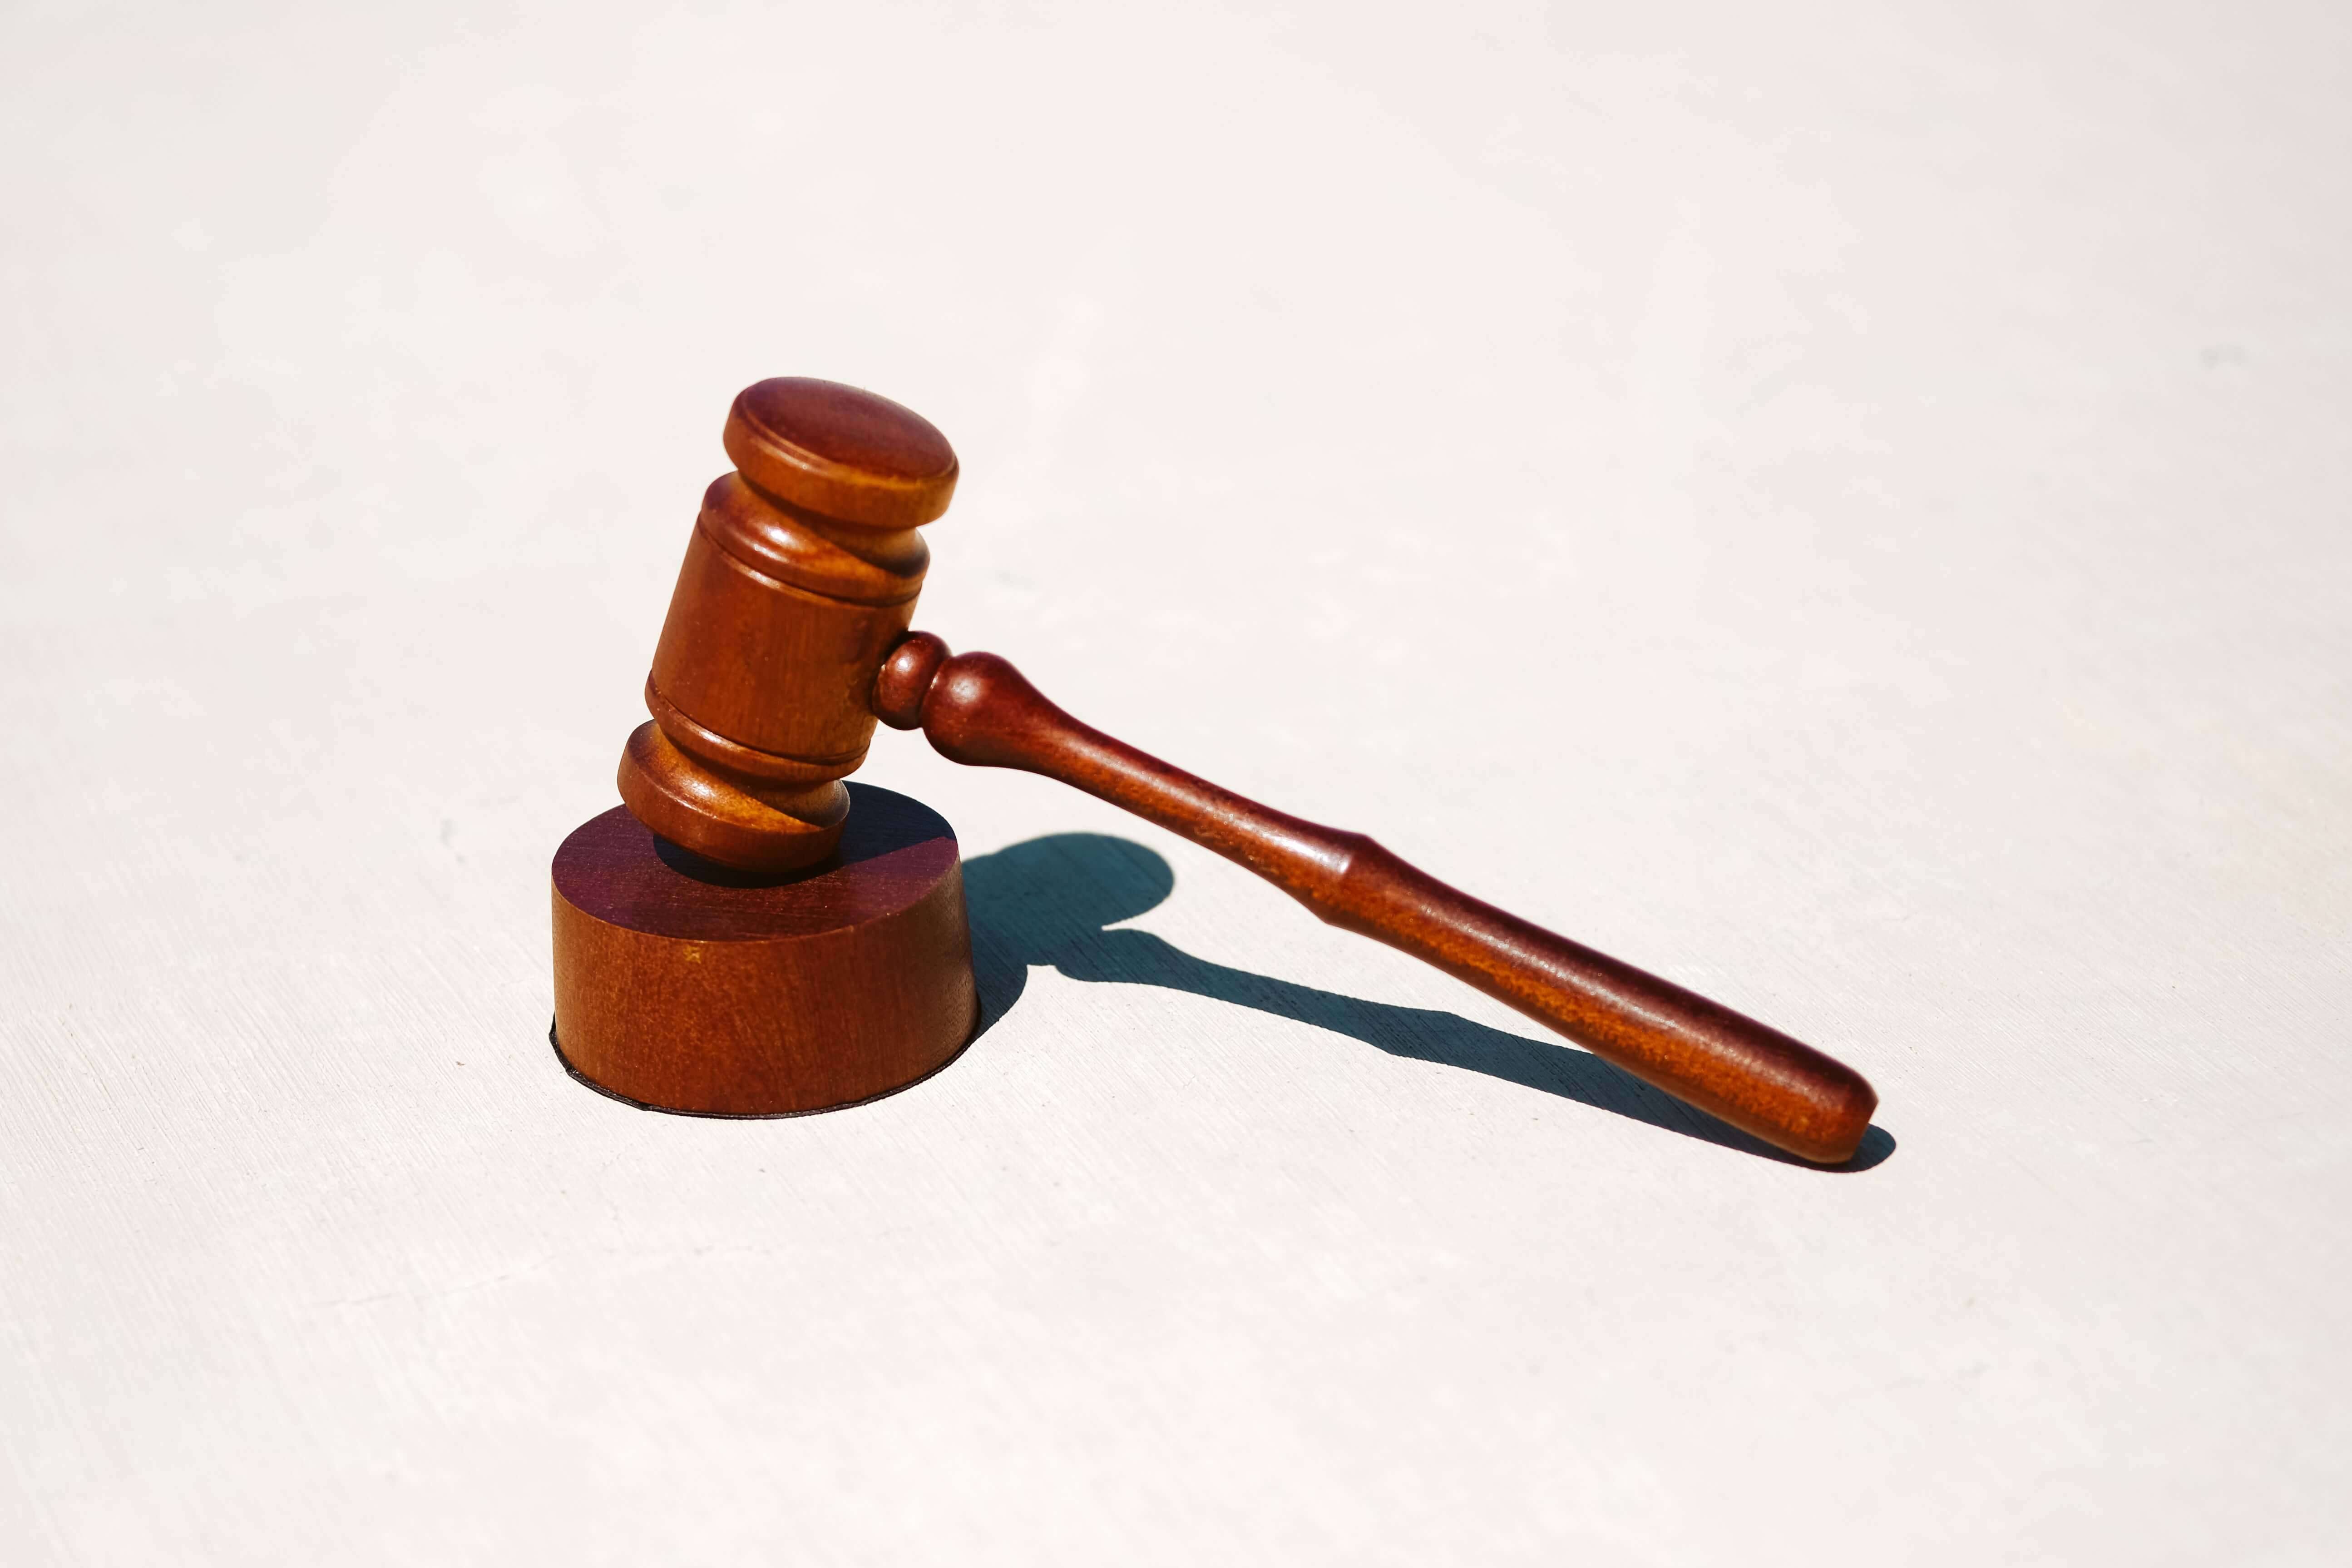 How Long Does a Misdemeanor Stay On Your Criminal Record?